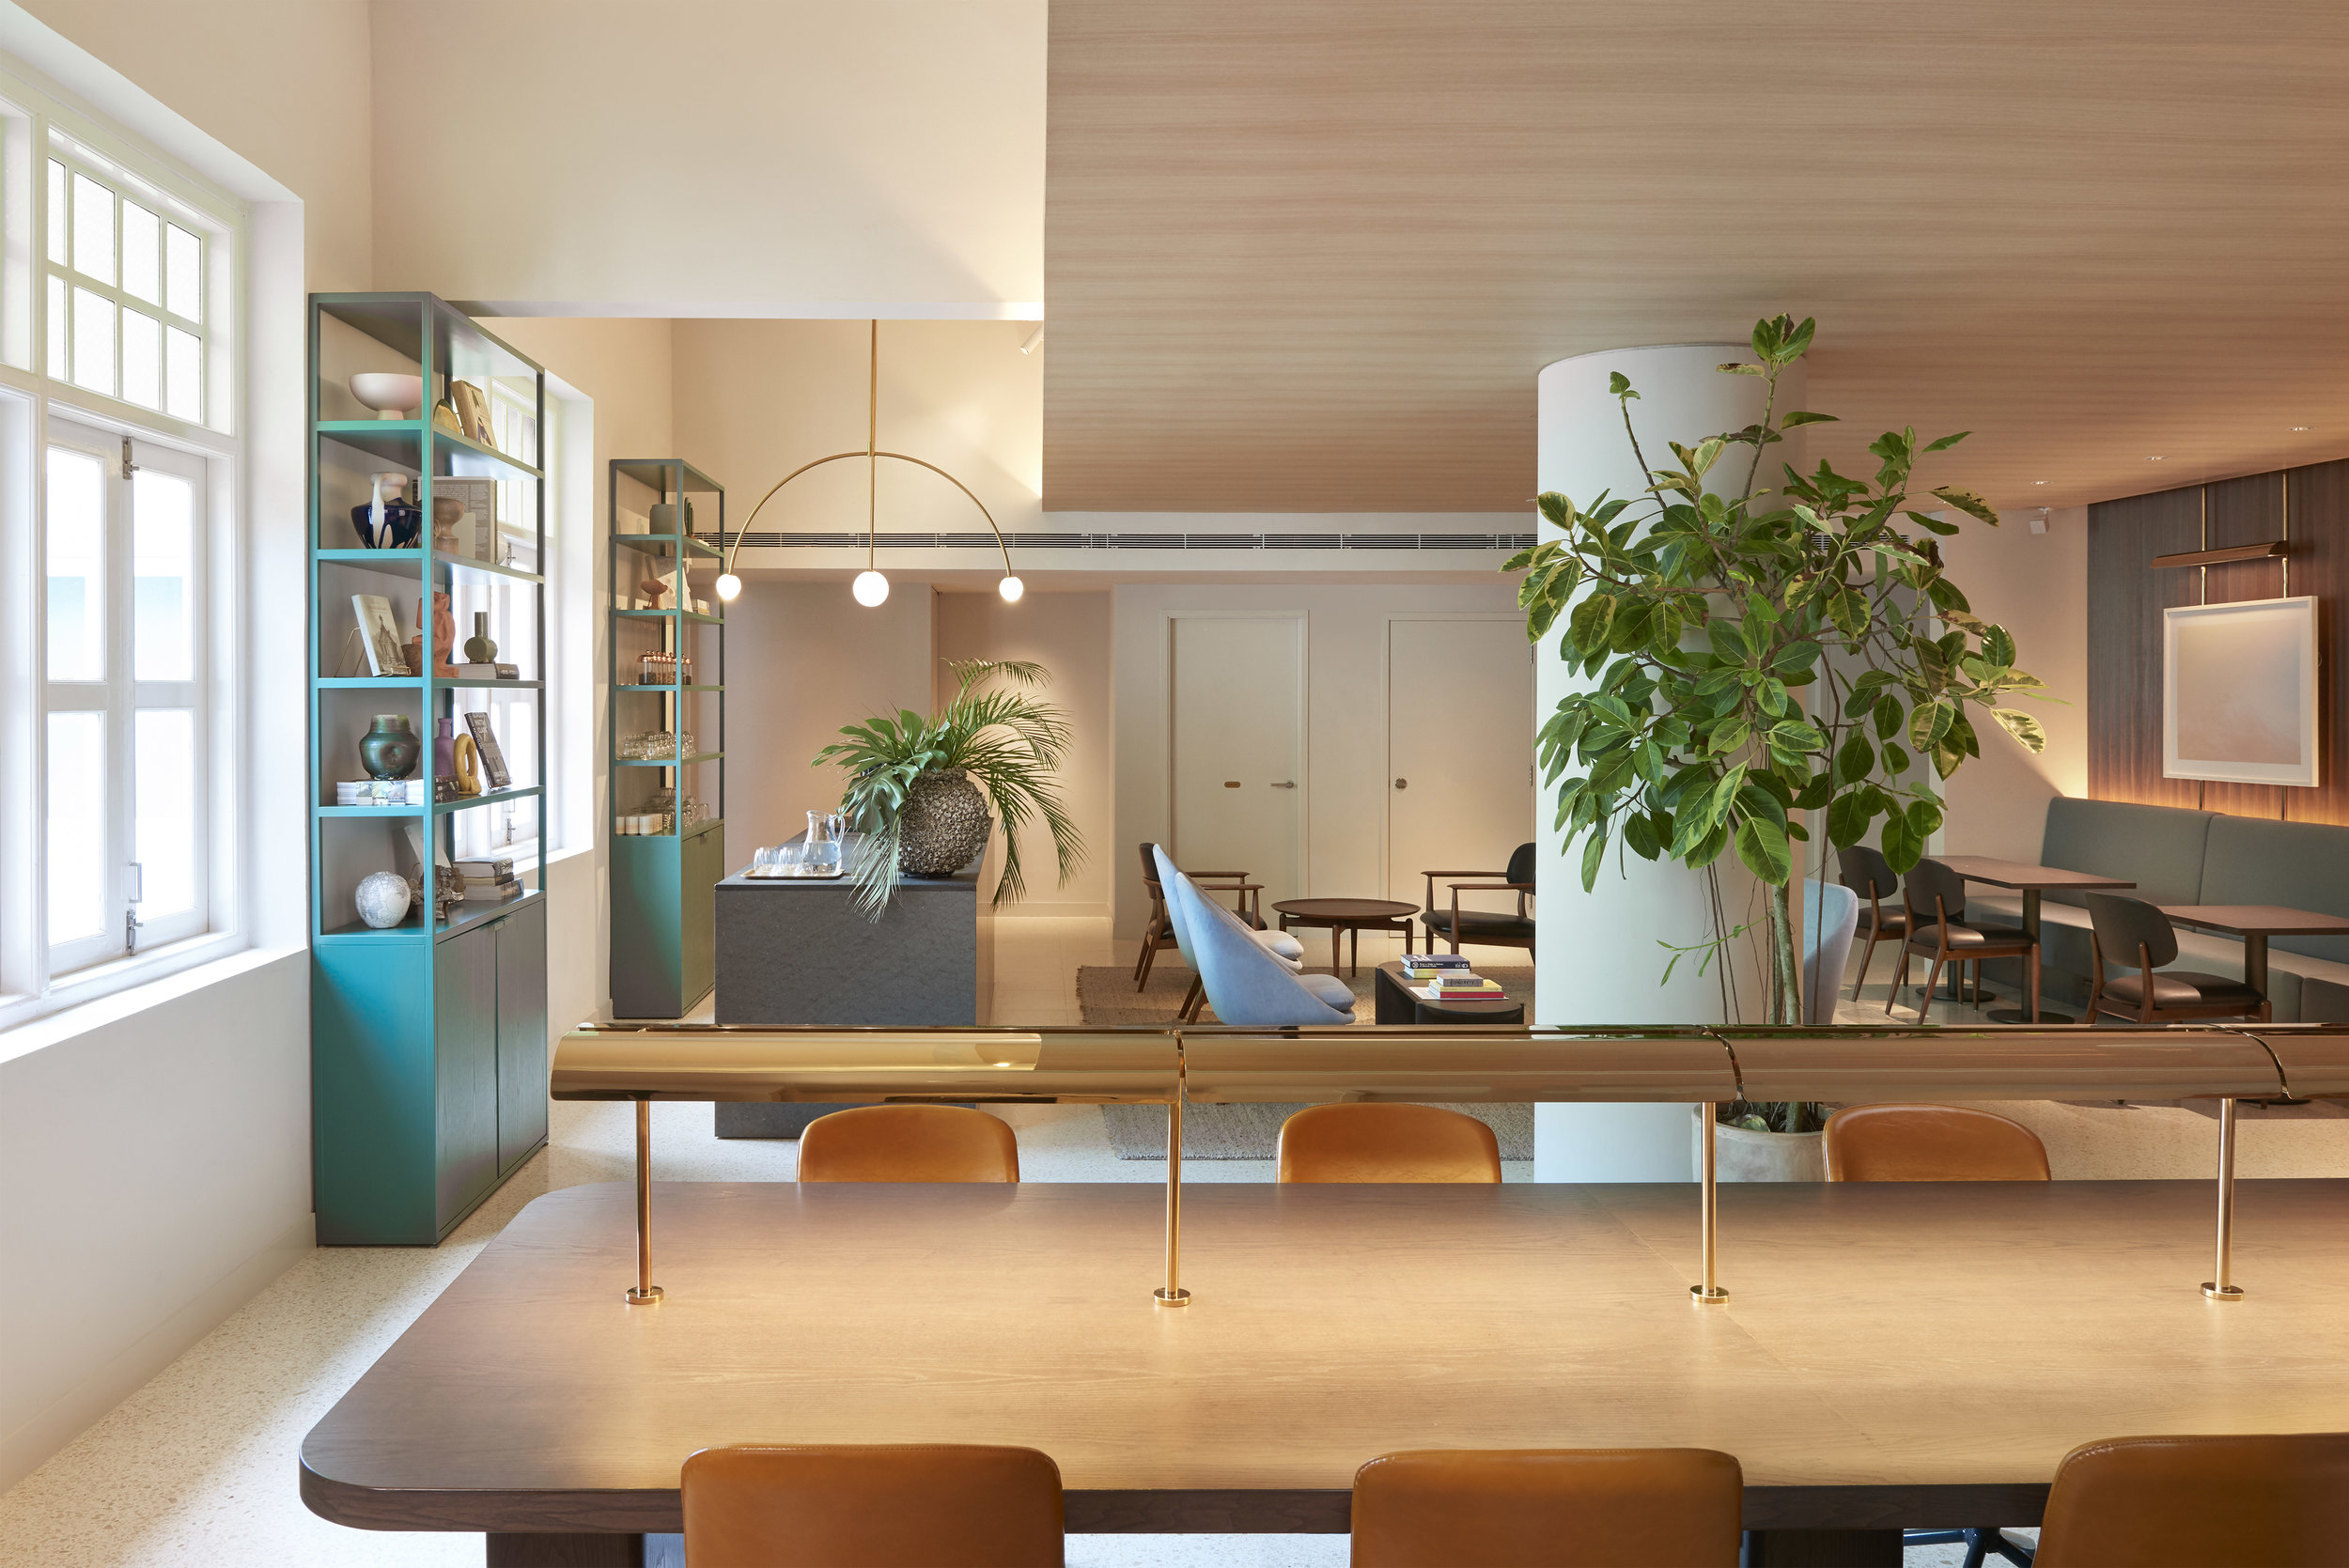 Reading Lounge - Without Left Shelf - Hires 6000px.jpg